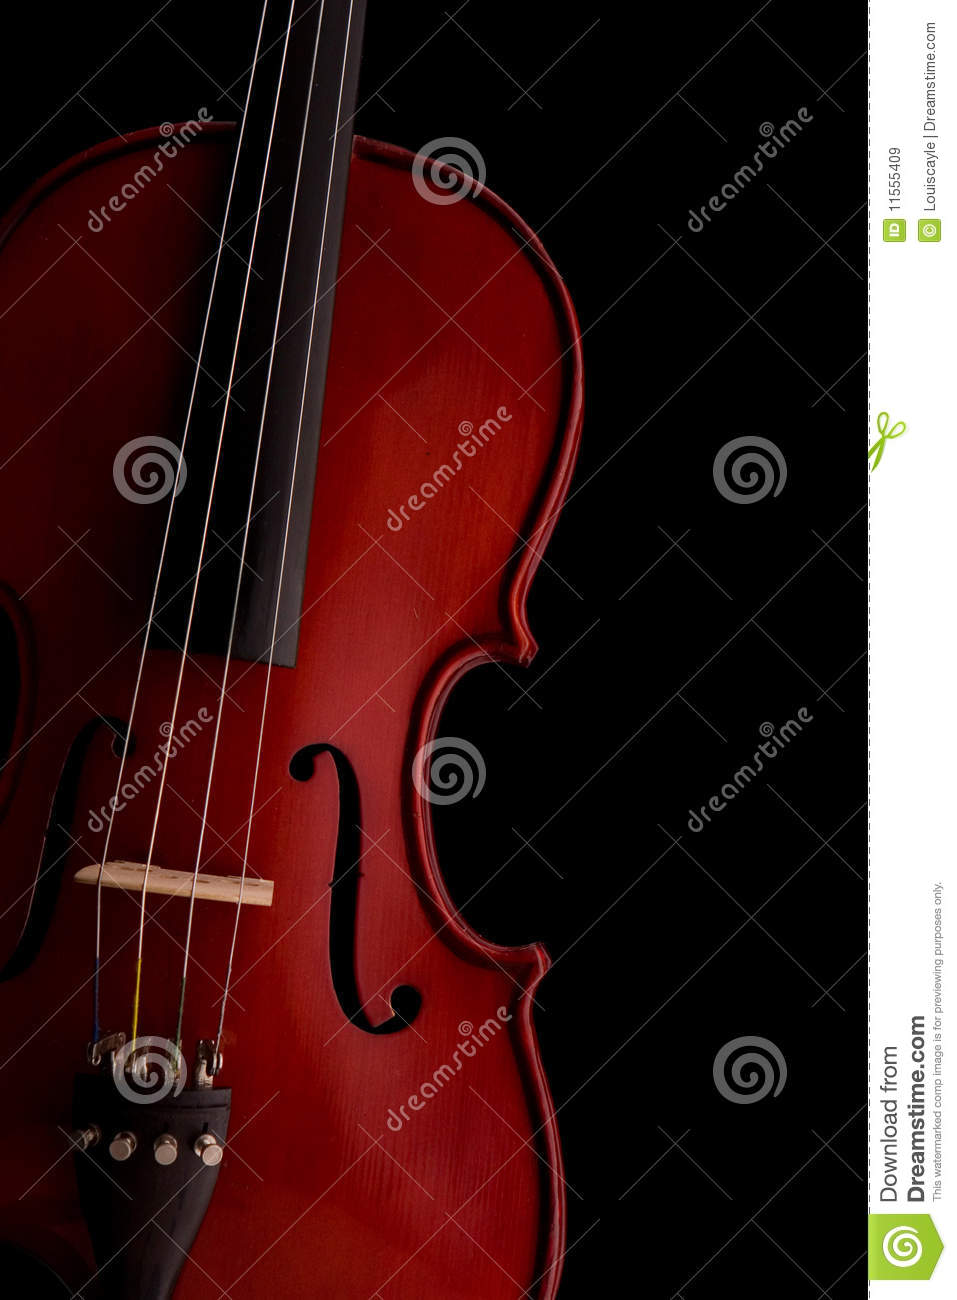 Musical Strings Royalty Free Stock Images - Image: 11555409